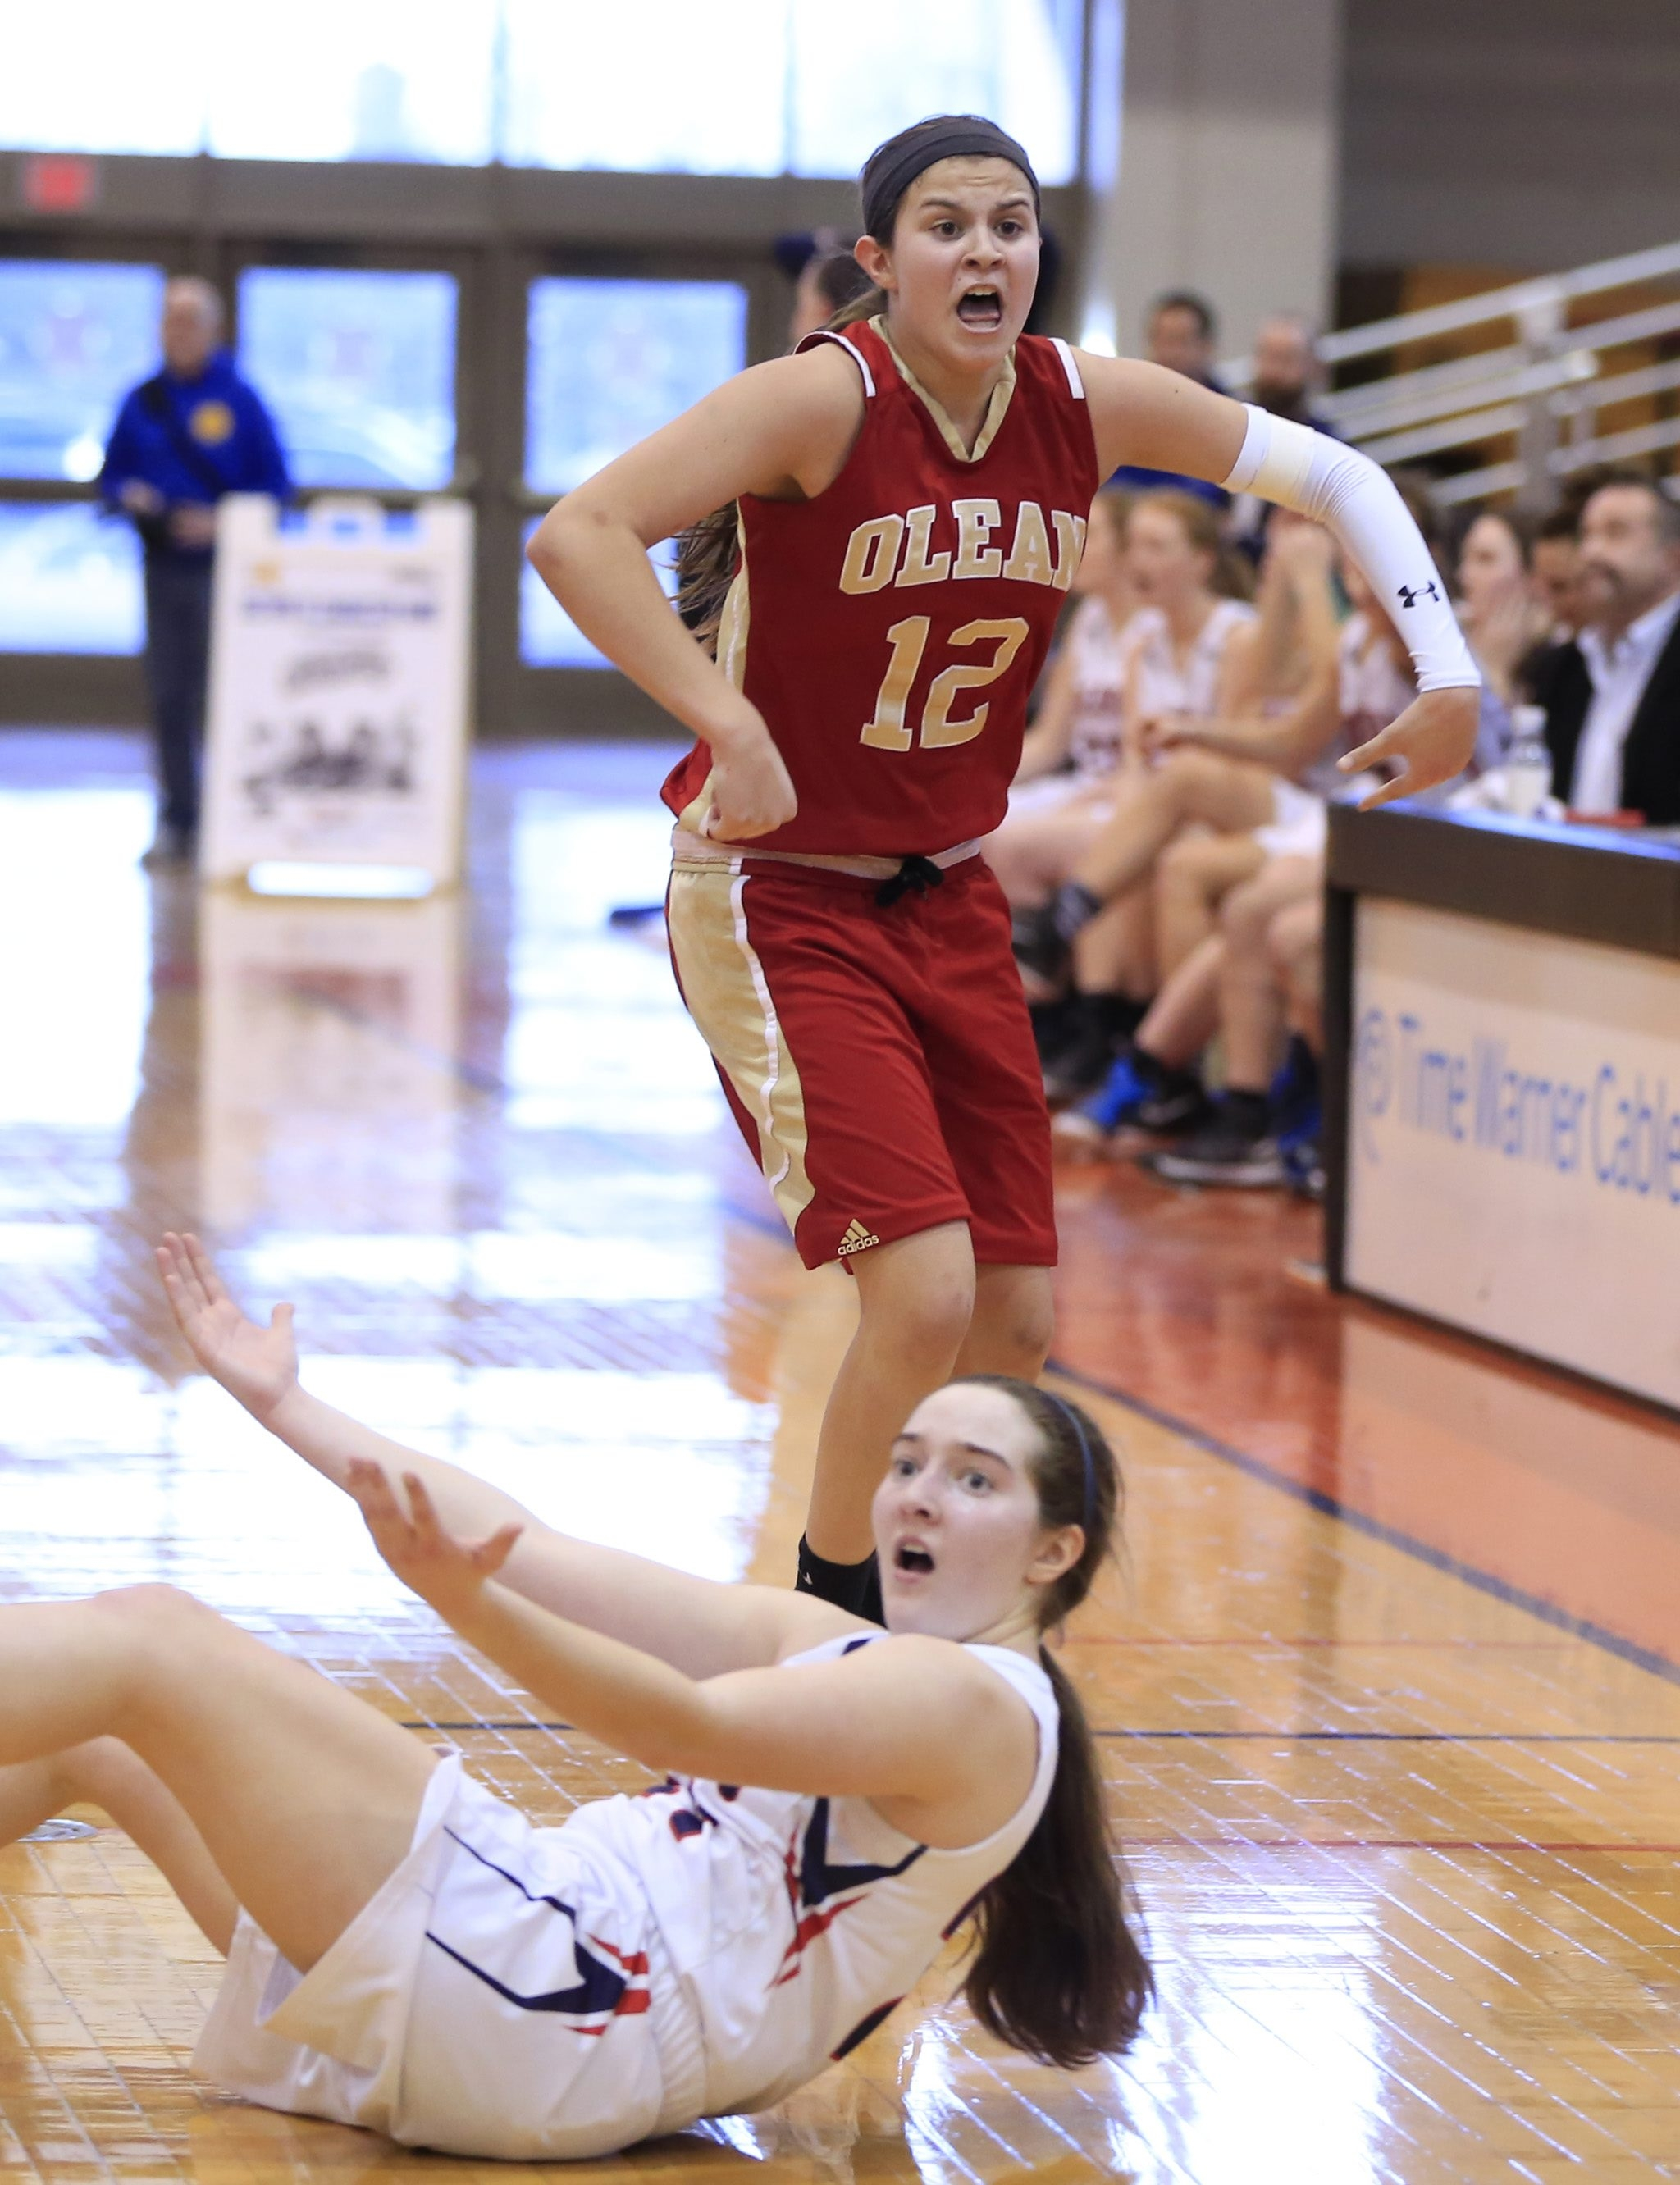 Olean's Sara Pfeiffer celebrates an overtime victory gainst East Aurora  in the B1 final at the Buffalo State Sports Arena  on Sunday, Feb. 28, 2016.  (Harry Scull Jr./Buffalo News)